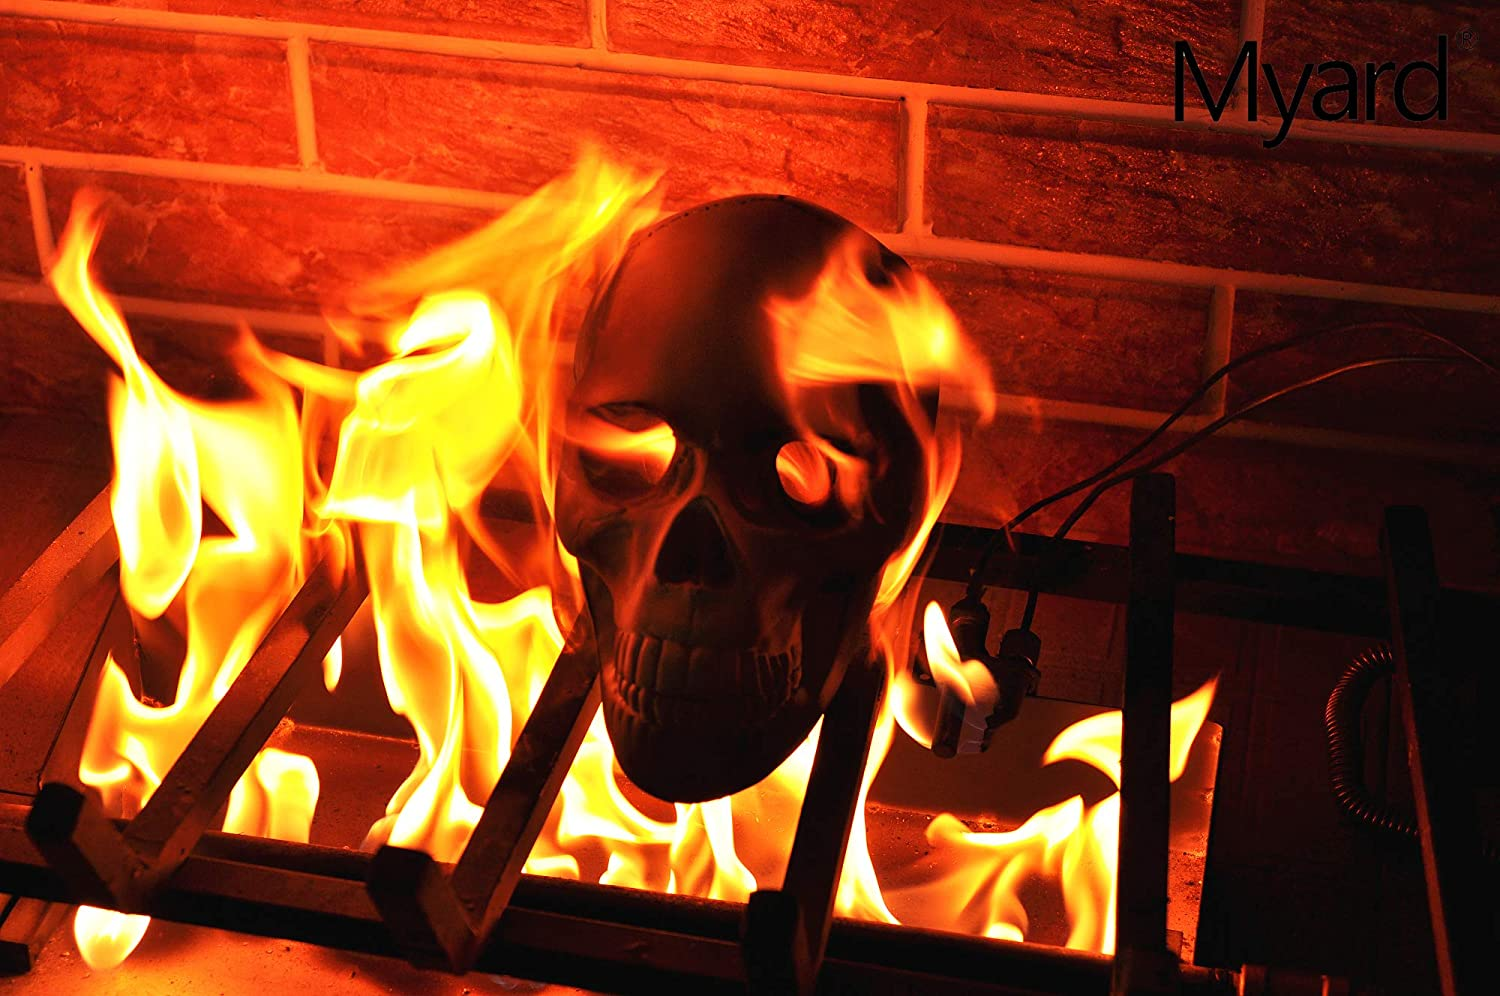 Fake Fireproof Human Skulls For Your Fire-pit - Burning skull bonfire Halloween prop